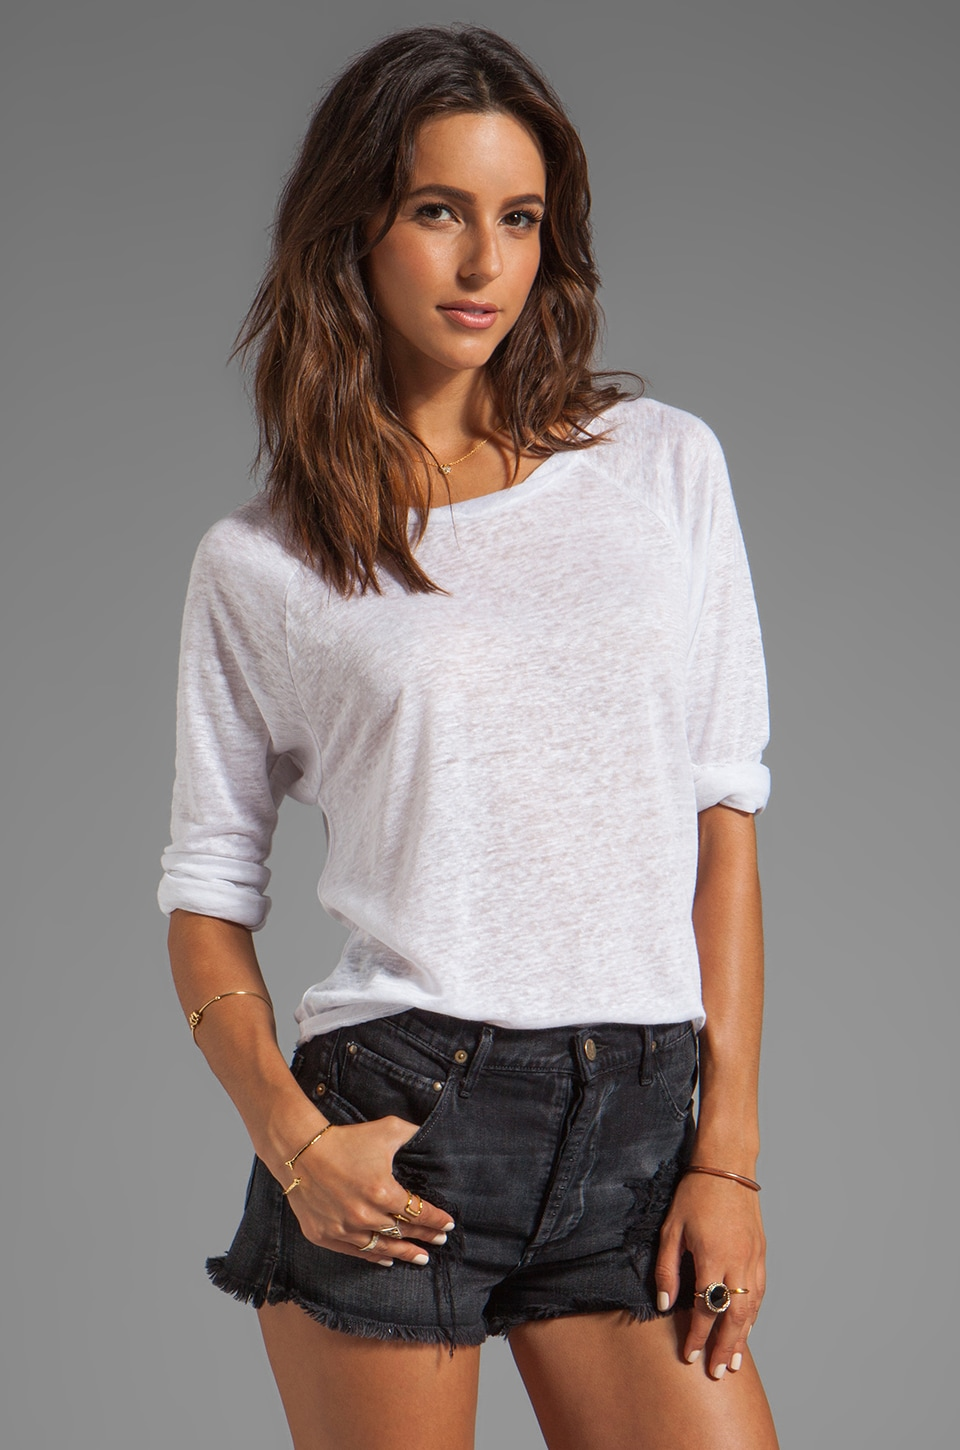 TOWNSEN Sheen Whistler 3/4 Top in White